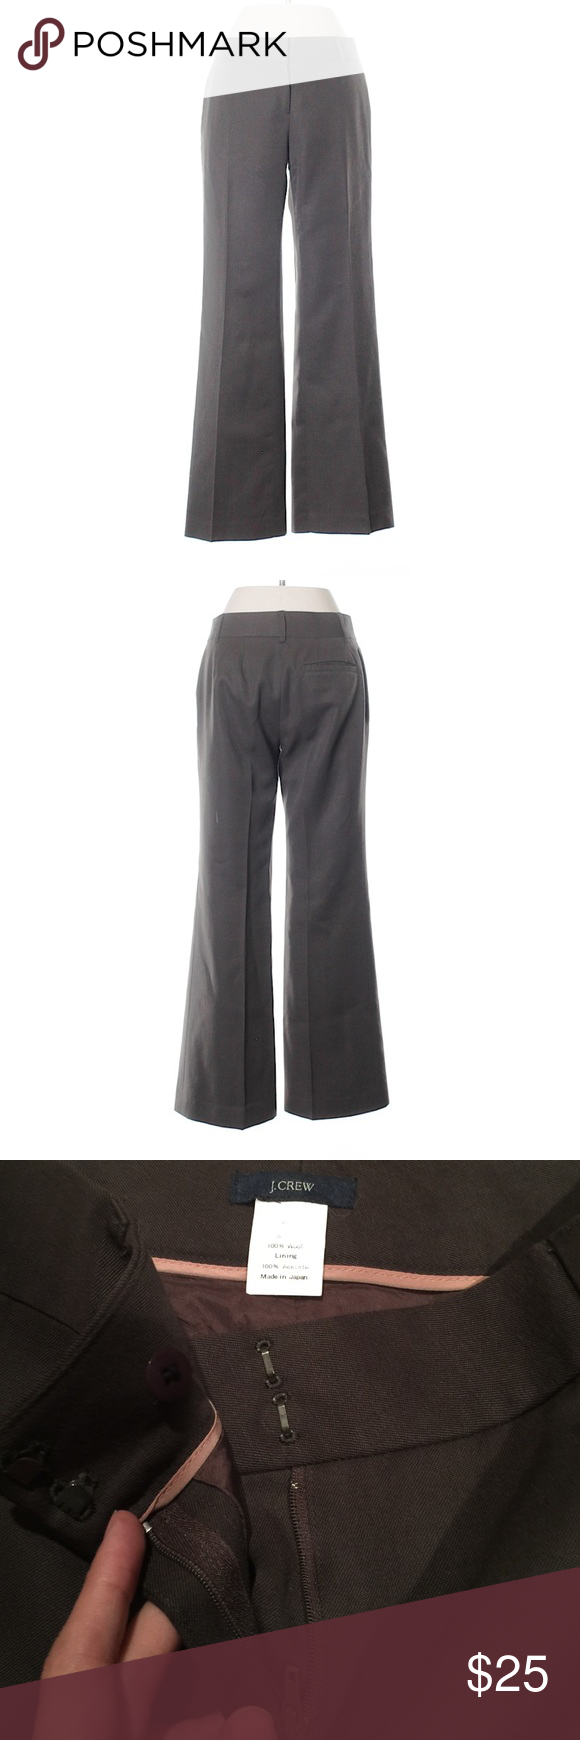 """J Crew Wool Pants J Crew Wool Pants. The perfect Pants for the office. Size 0P, boot leg cut, brown, midrise waist. 29"""" inseam. 100% wool. In great conditions, no flaws. J. Crew Pants Boot Cut & Flare"""